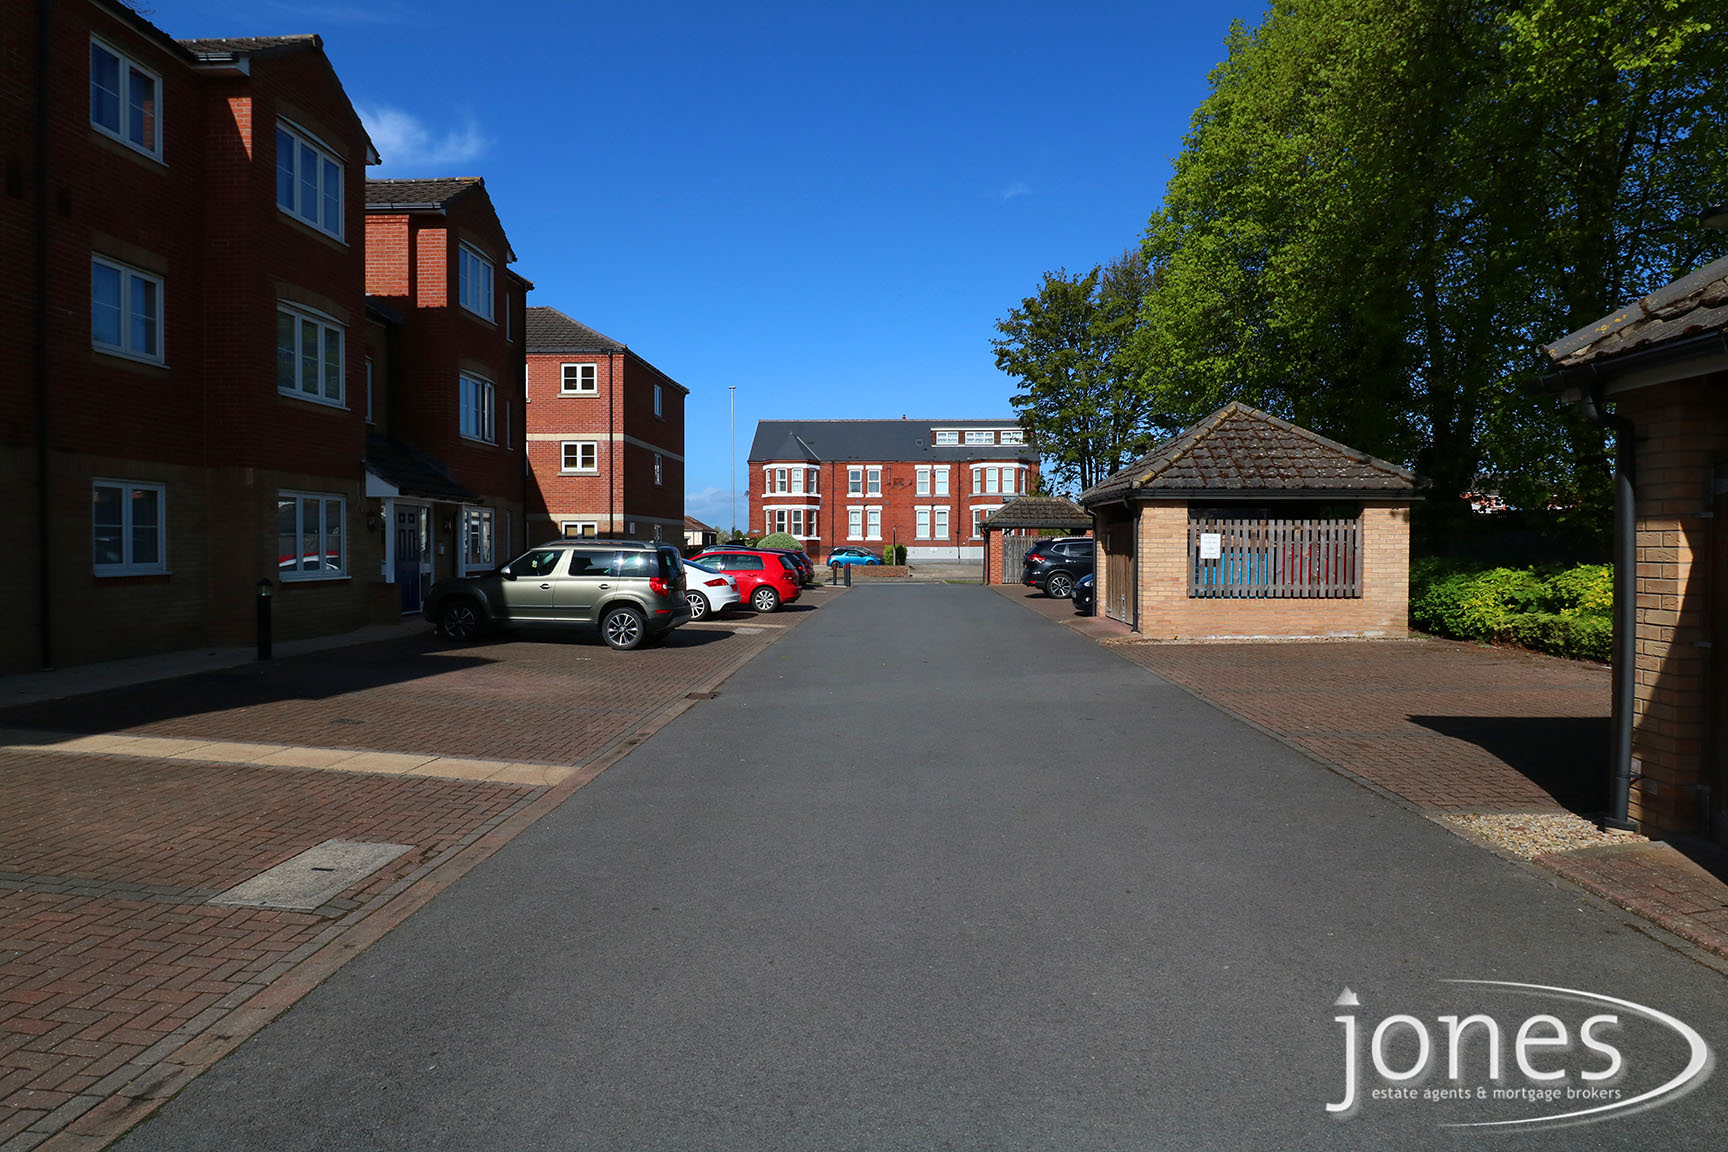 Home for Sale Let - Photo 07 Earls Court, Norton, Stockton on Tees TS20 2NP